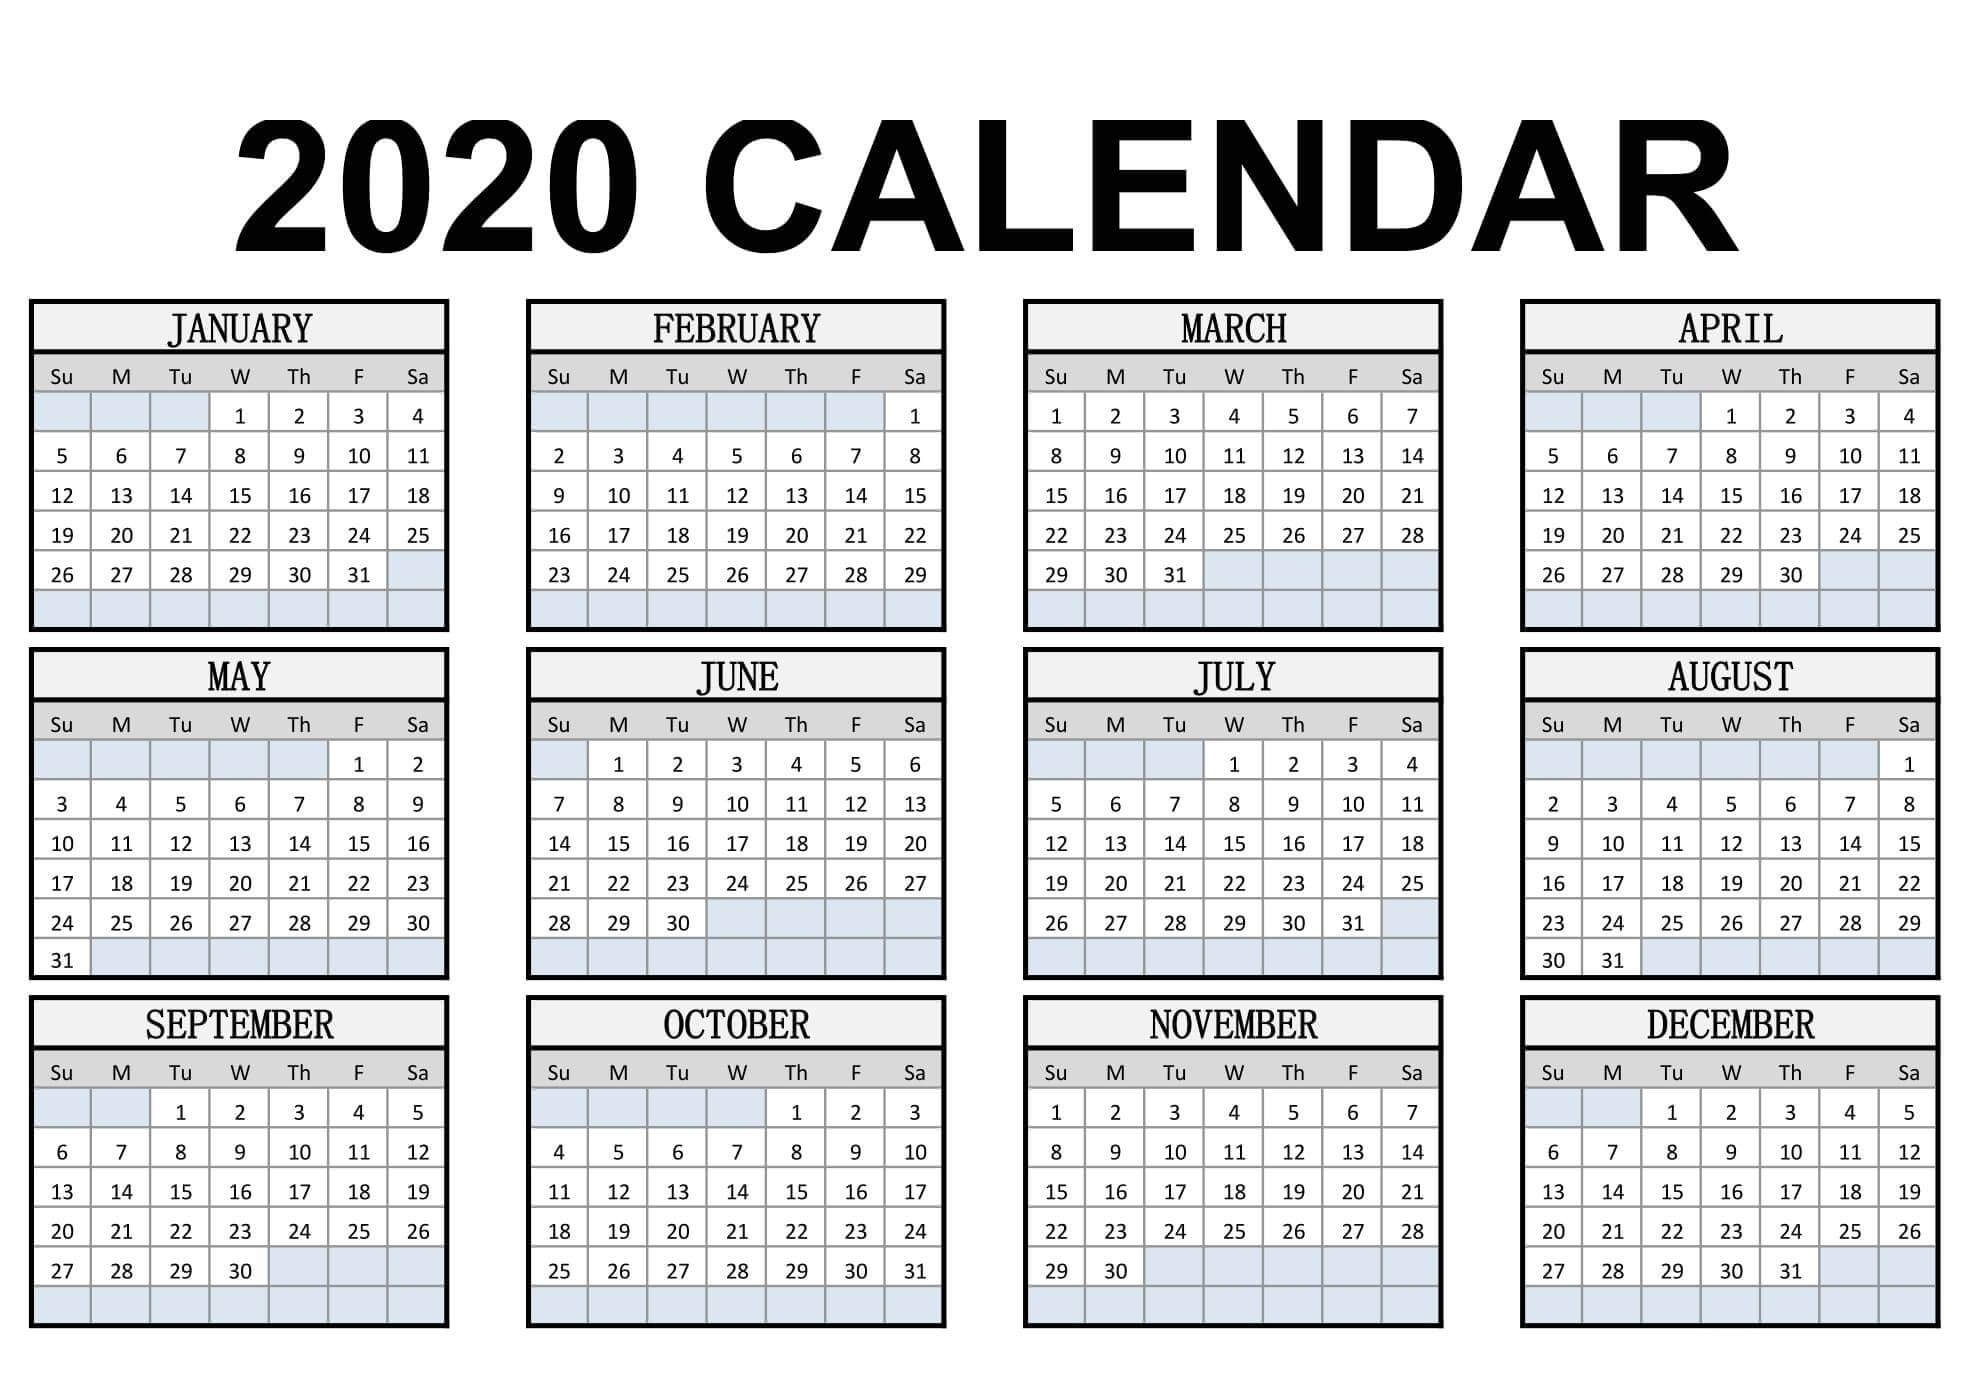 Calendar Year 2020 Holidays Template - 2019 Calendars For in Calander At A Glance 2020 Excel